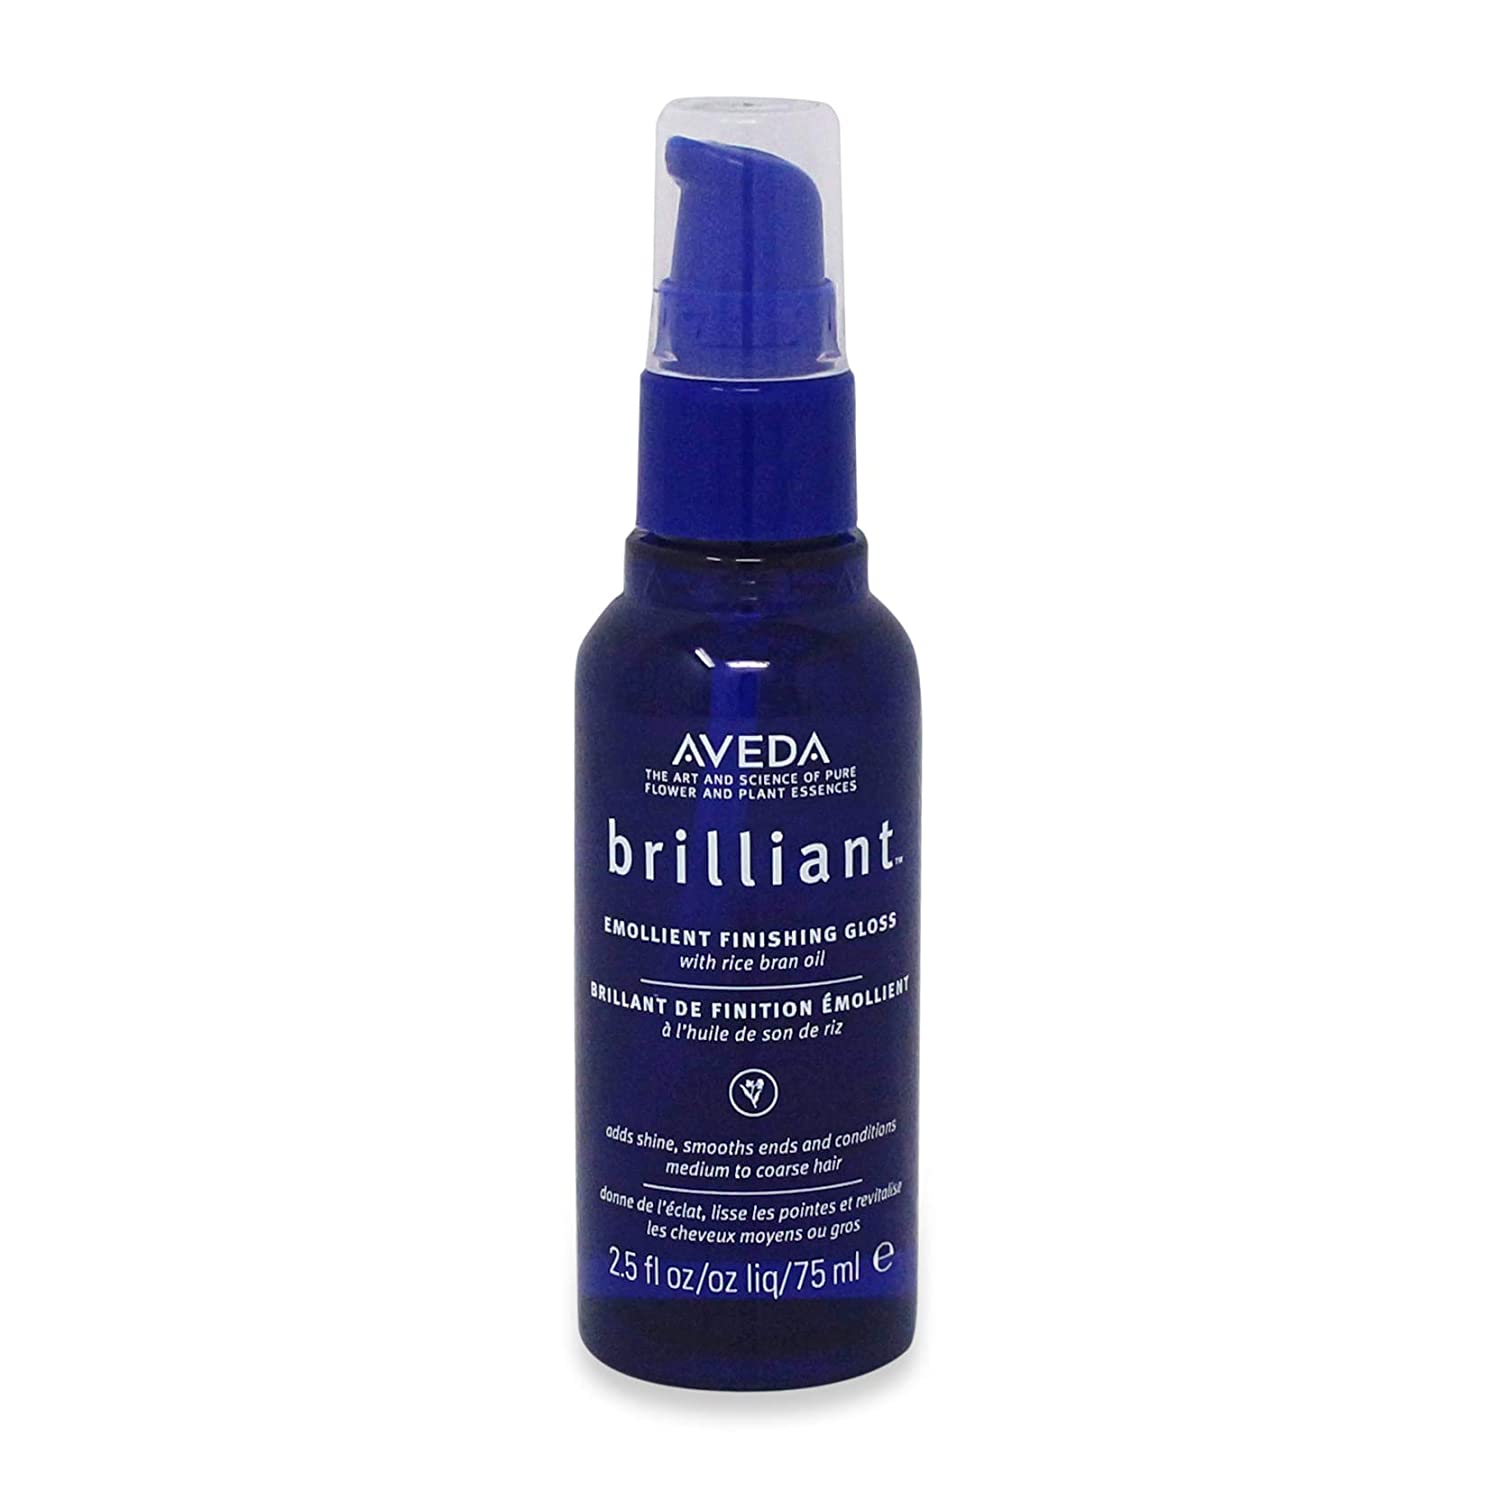 AVEDA by Aveda BRILLIANT EMOLLIENT FINISHING GLOSS WITH RICE BRAN OIL 2.5 OZ for UNISEX